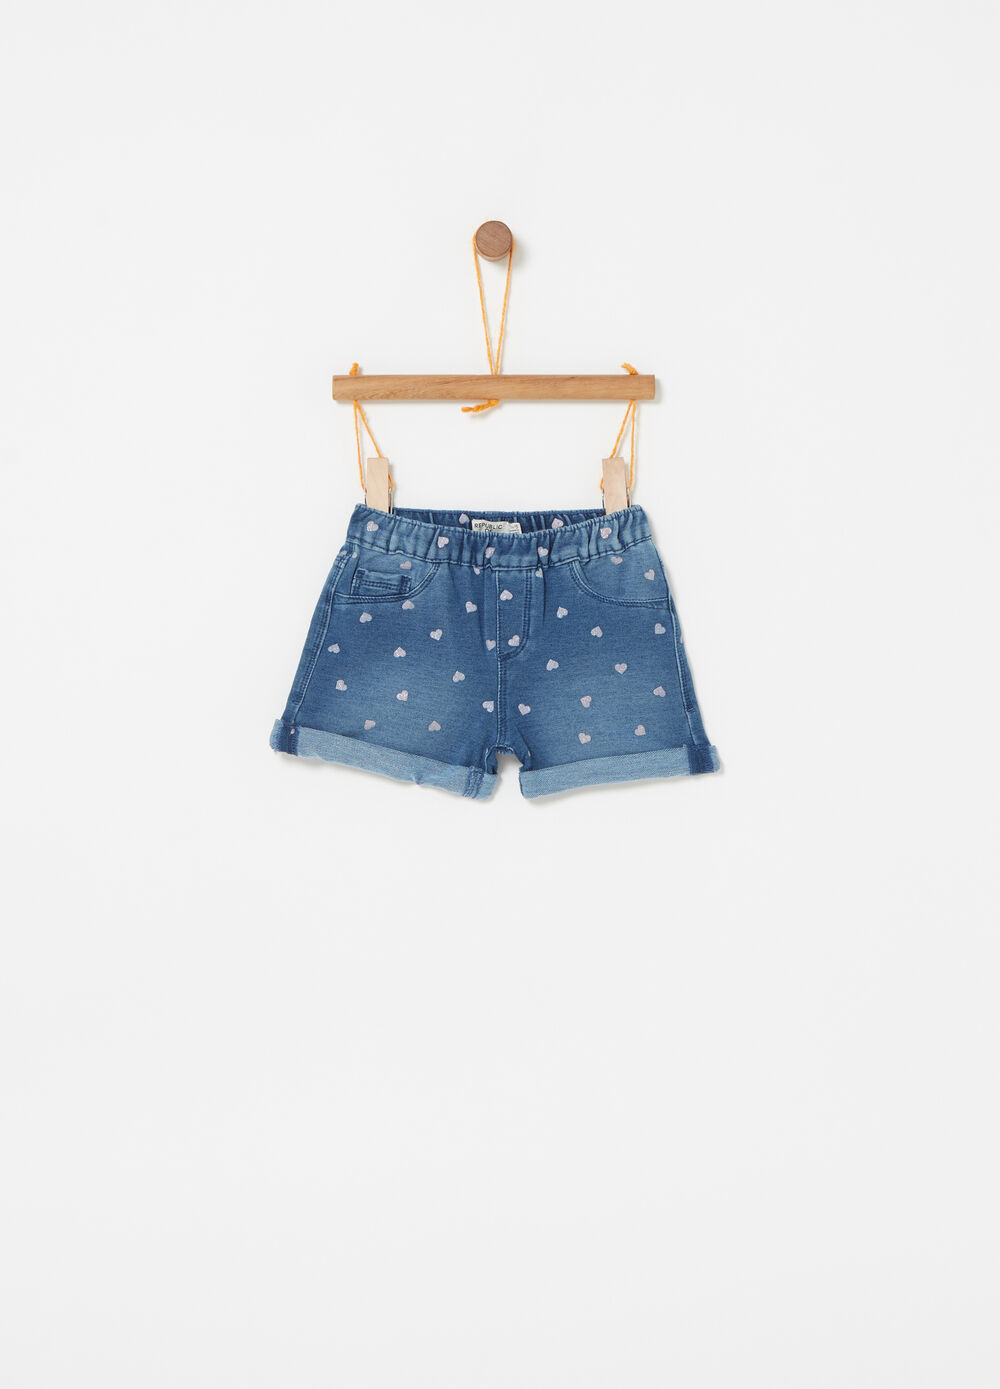 Denim shorts with five pockets and hearts